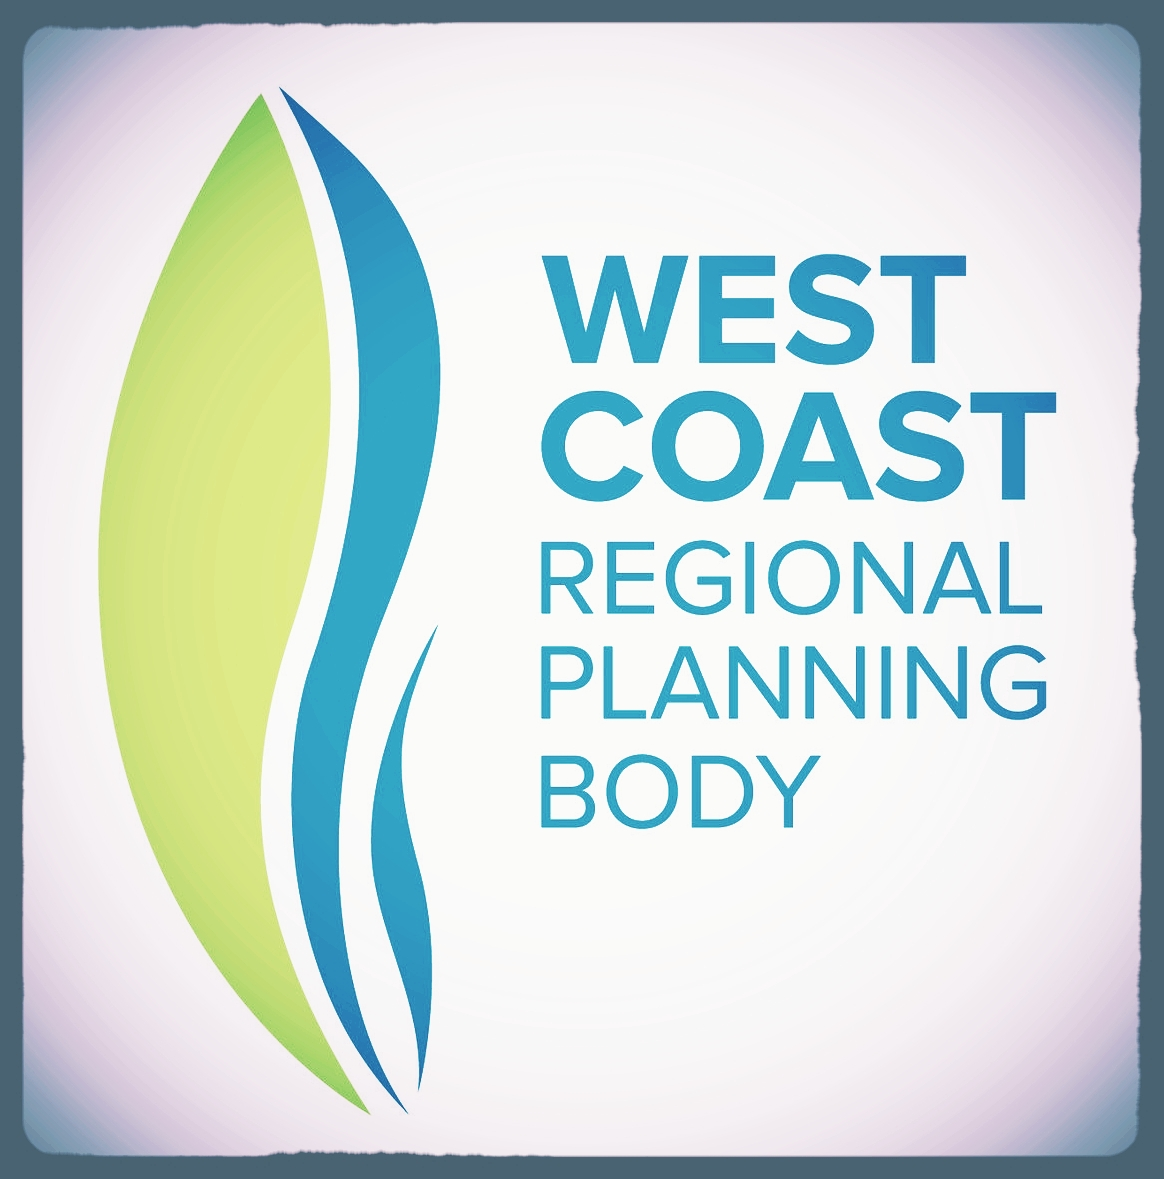 West Coast Regional Planning Body